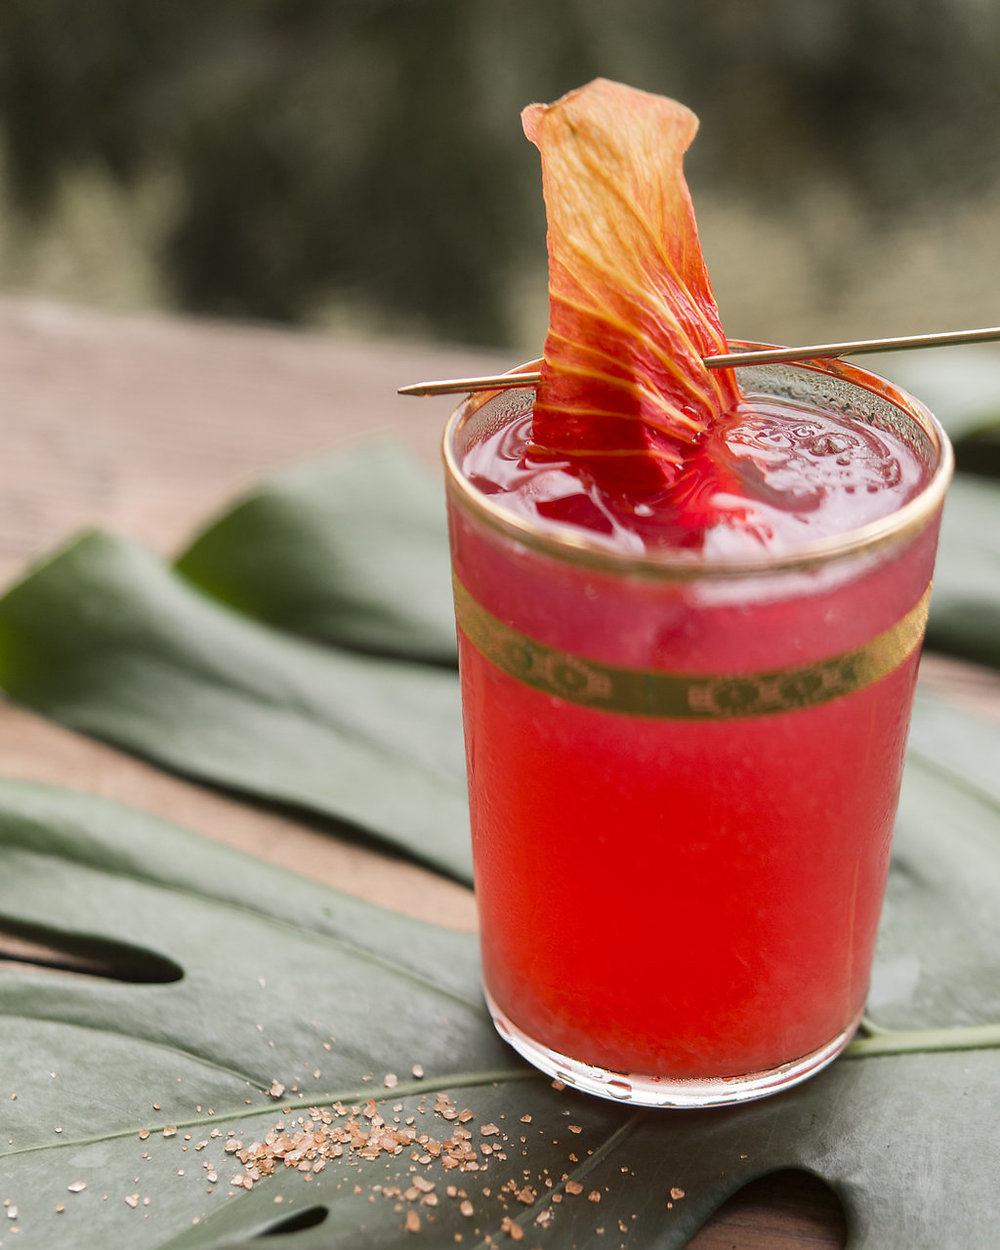 ALO'ALO   fresh pressed lime, house hibiscus syrup, hawaiian sea salt, reposado tequila